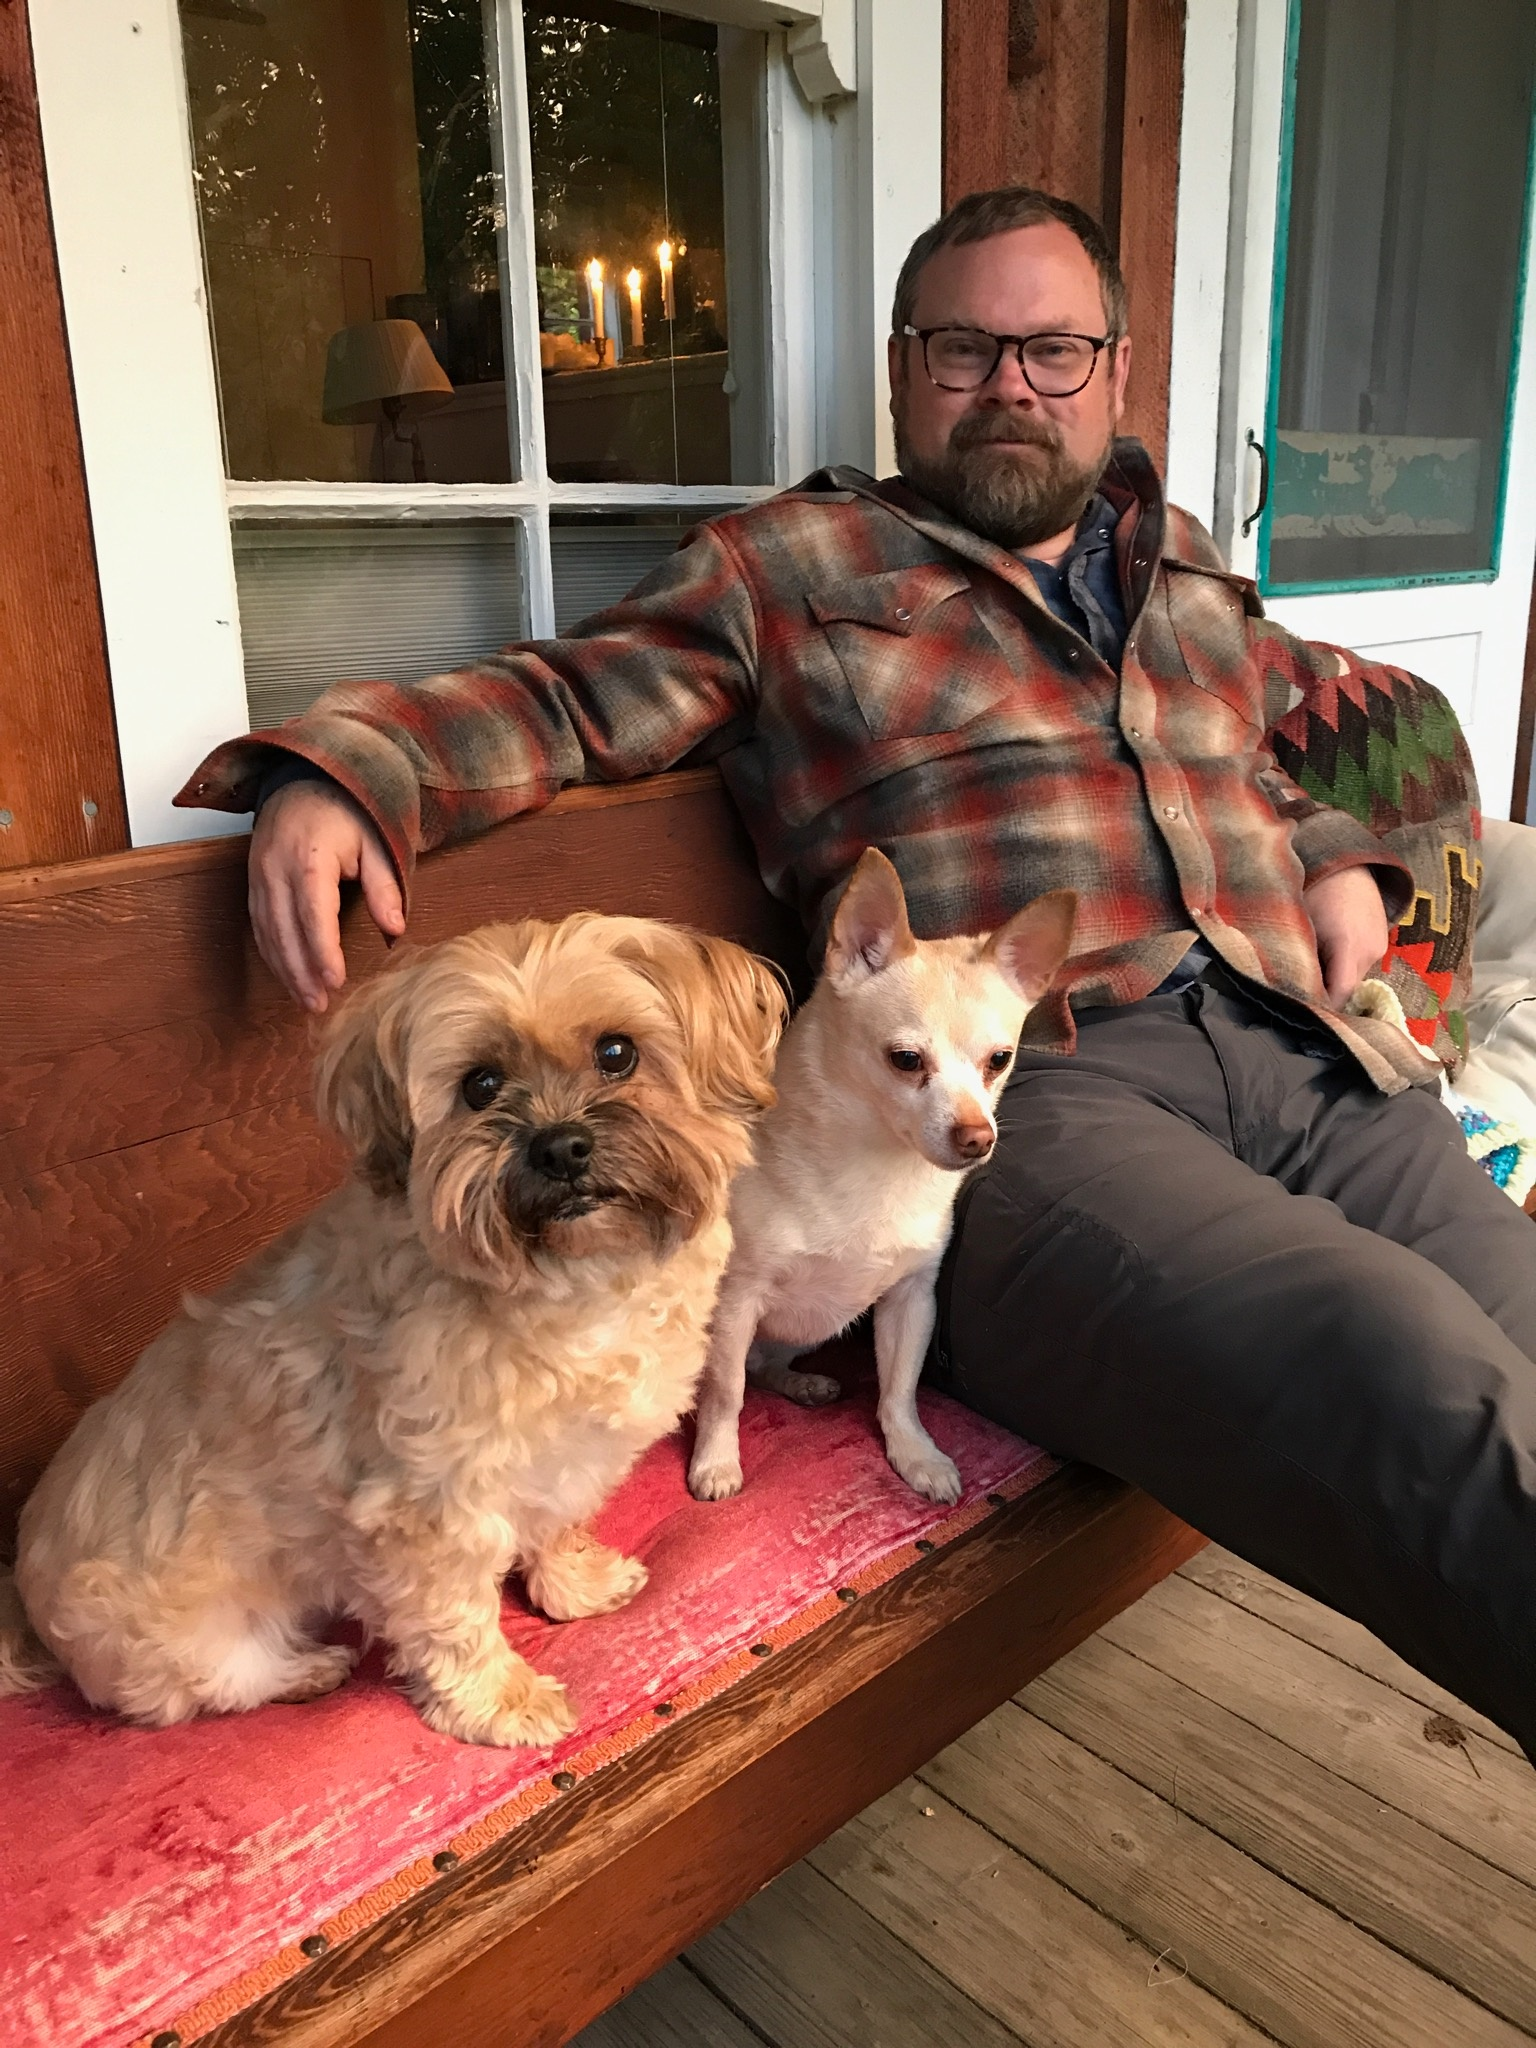 Man sits on bench with two dogs